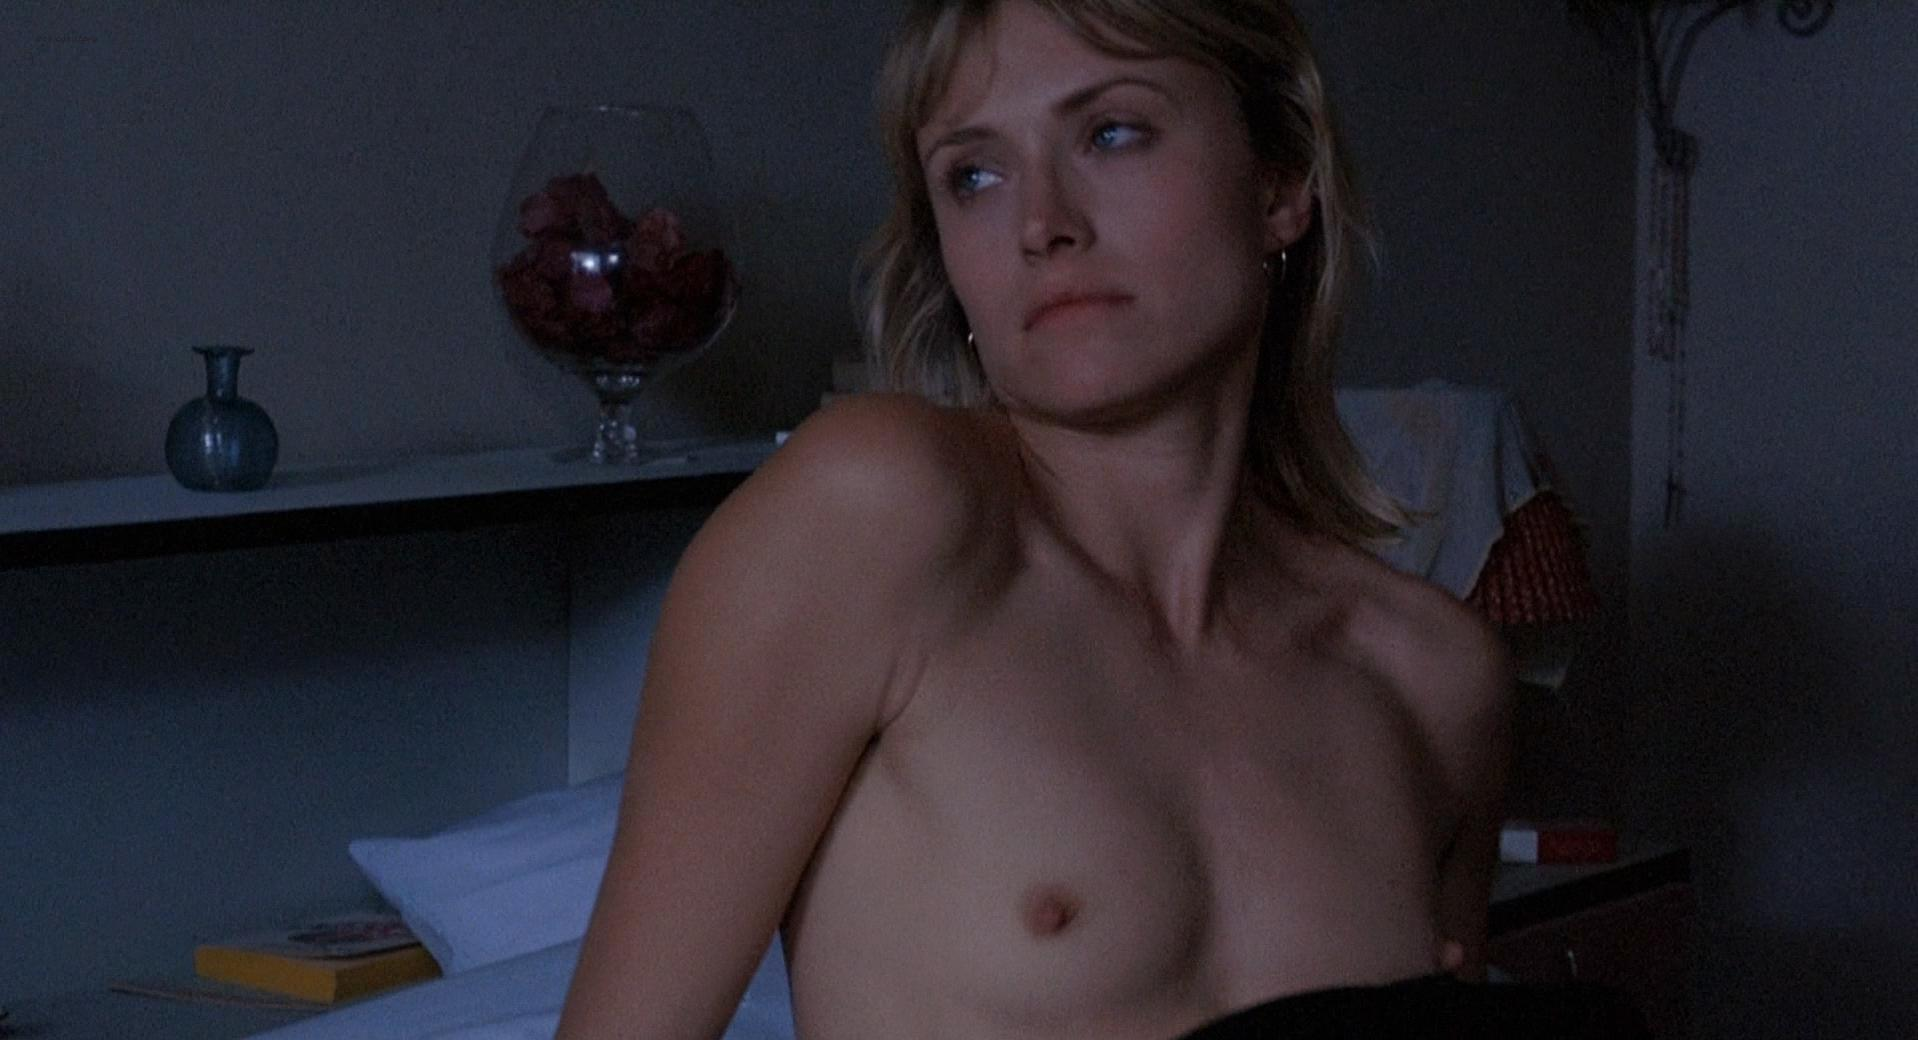 Diane franklin nude scene in the last american virgin scandalplanetcom 9